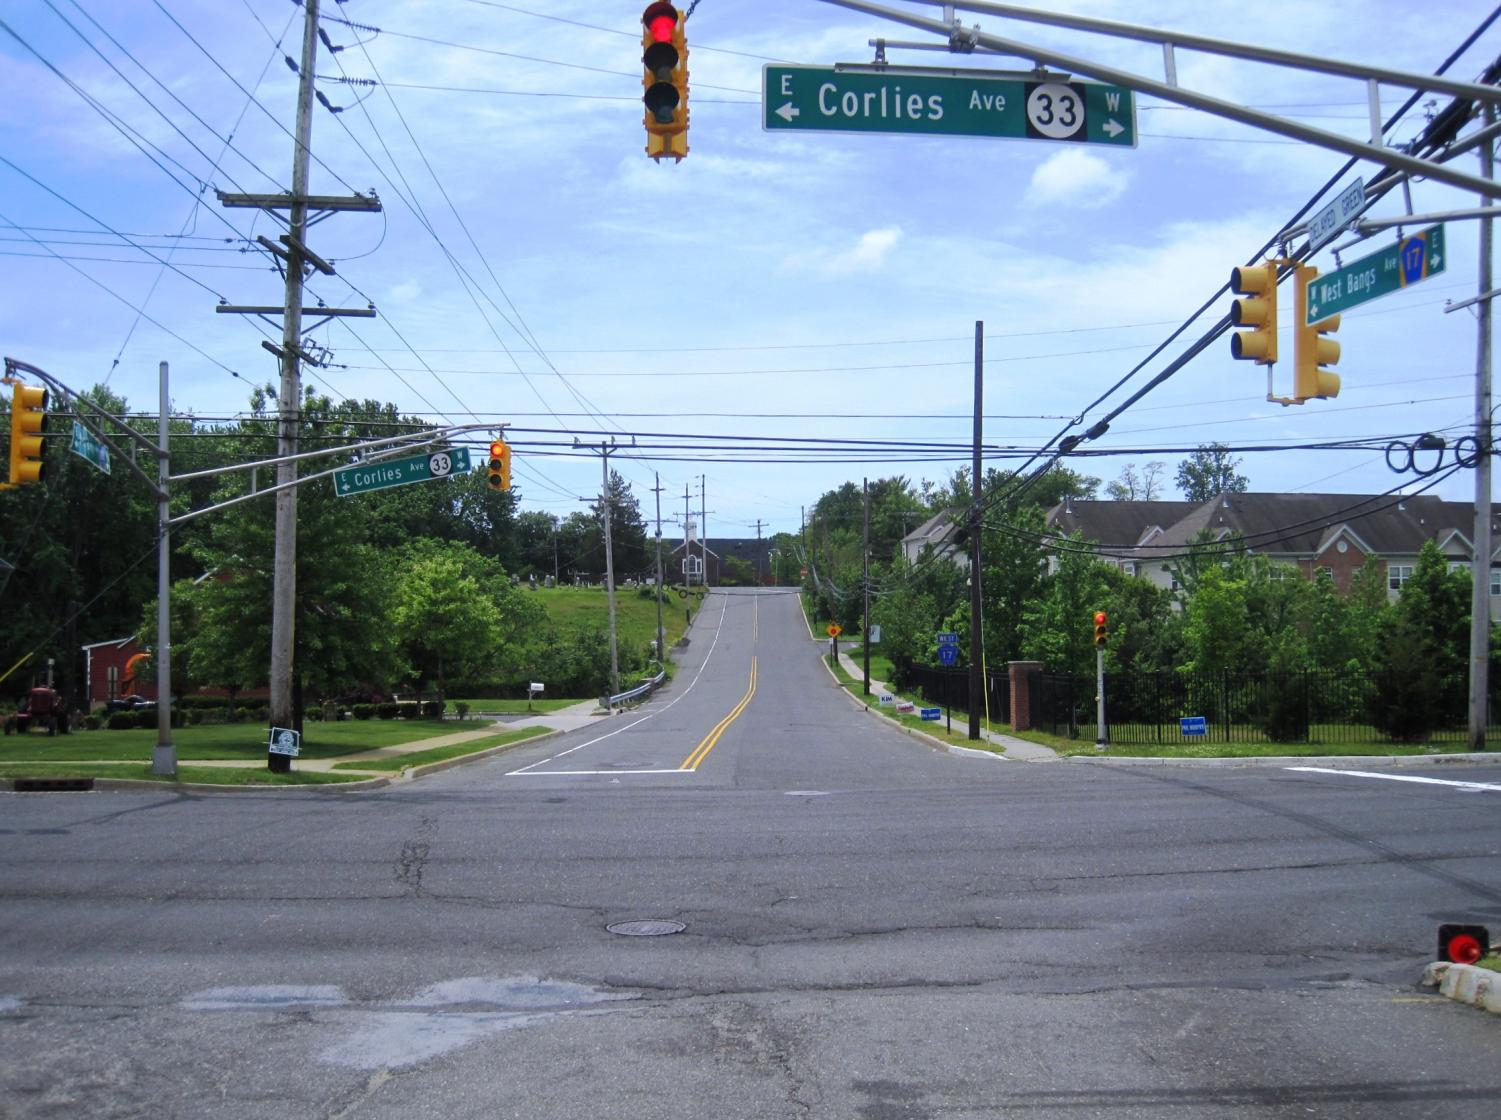 A main road in Monmouth County, New Jersey.